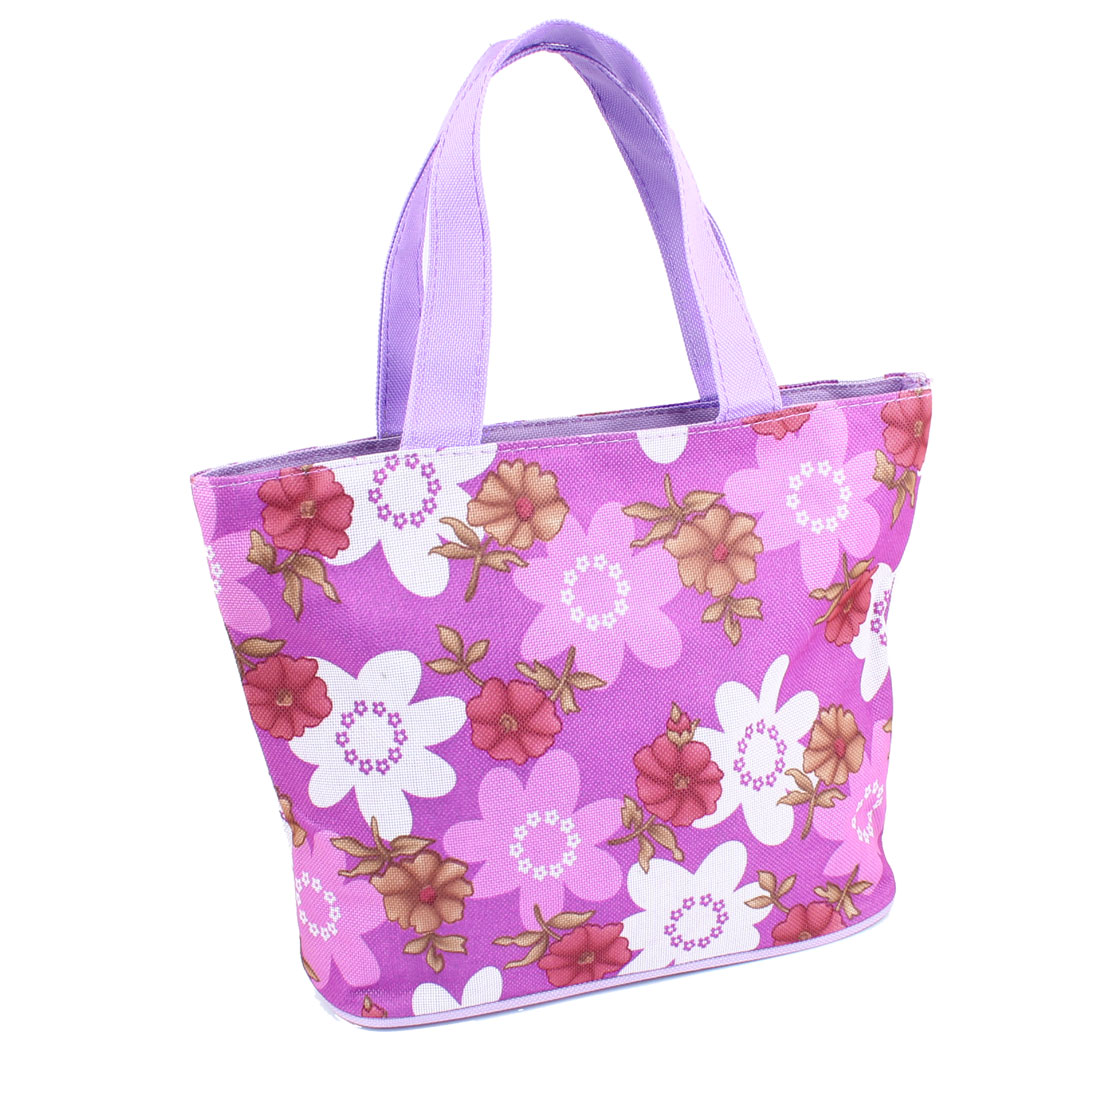 Colorful Flower Pattern Zip Up Foldable Shopping Handbag Tote Light Purple